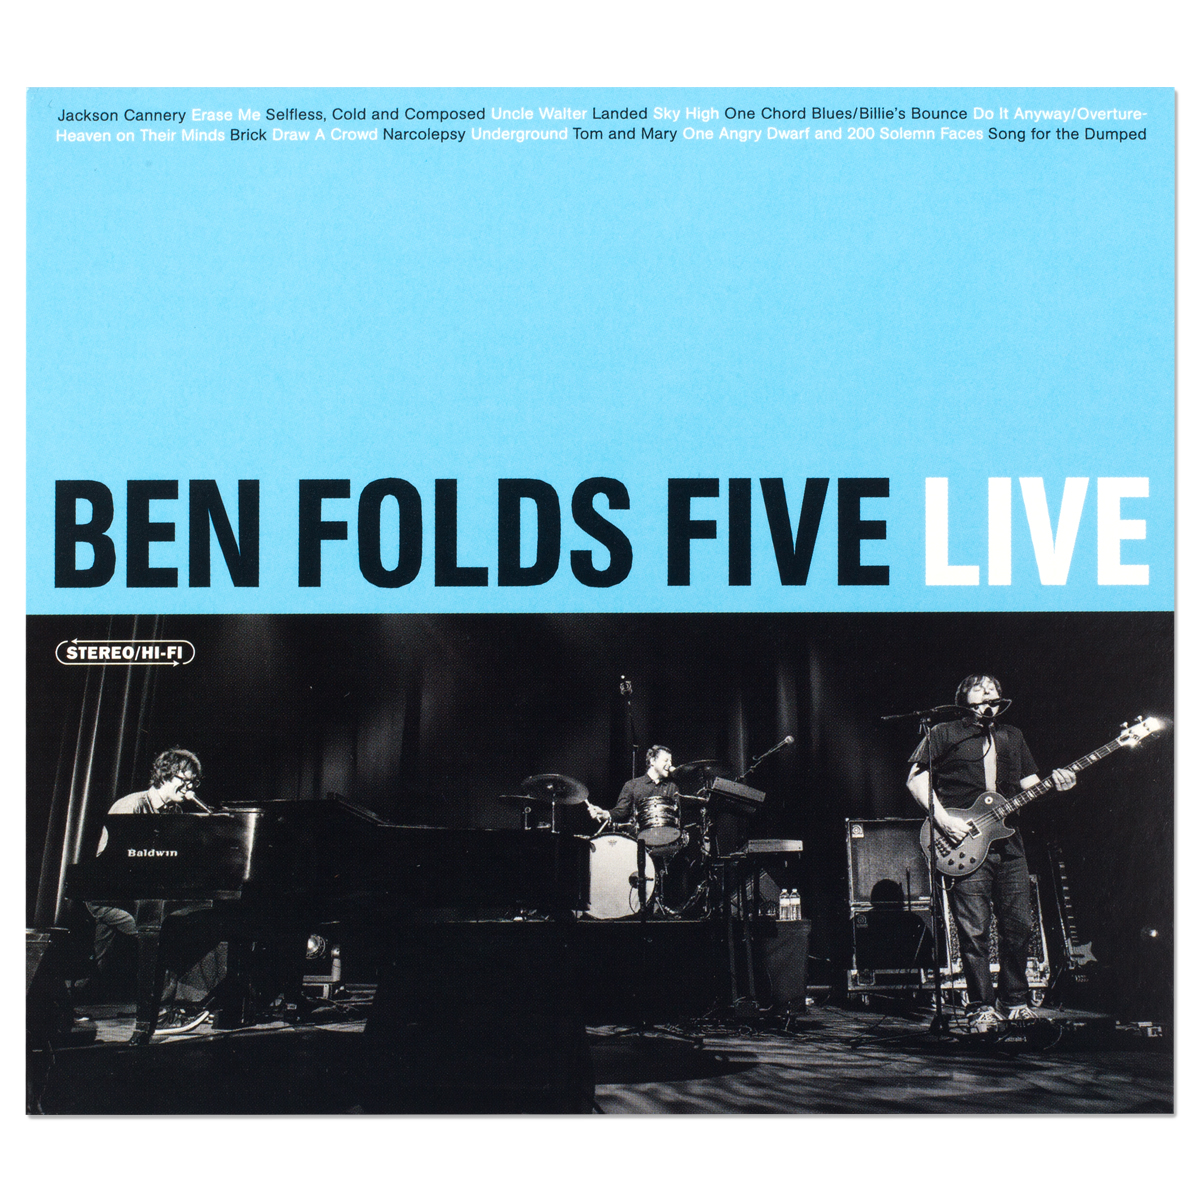 Ben Folds Five Live CD